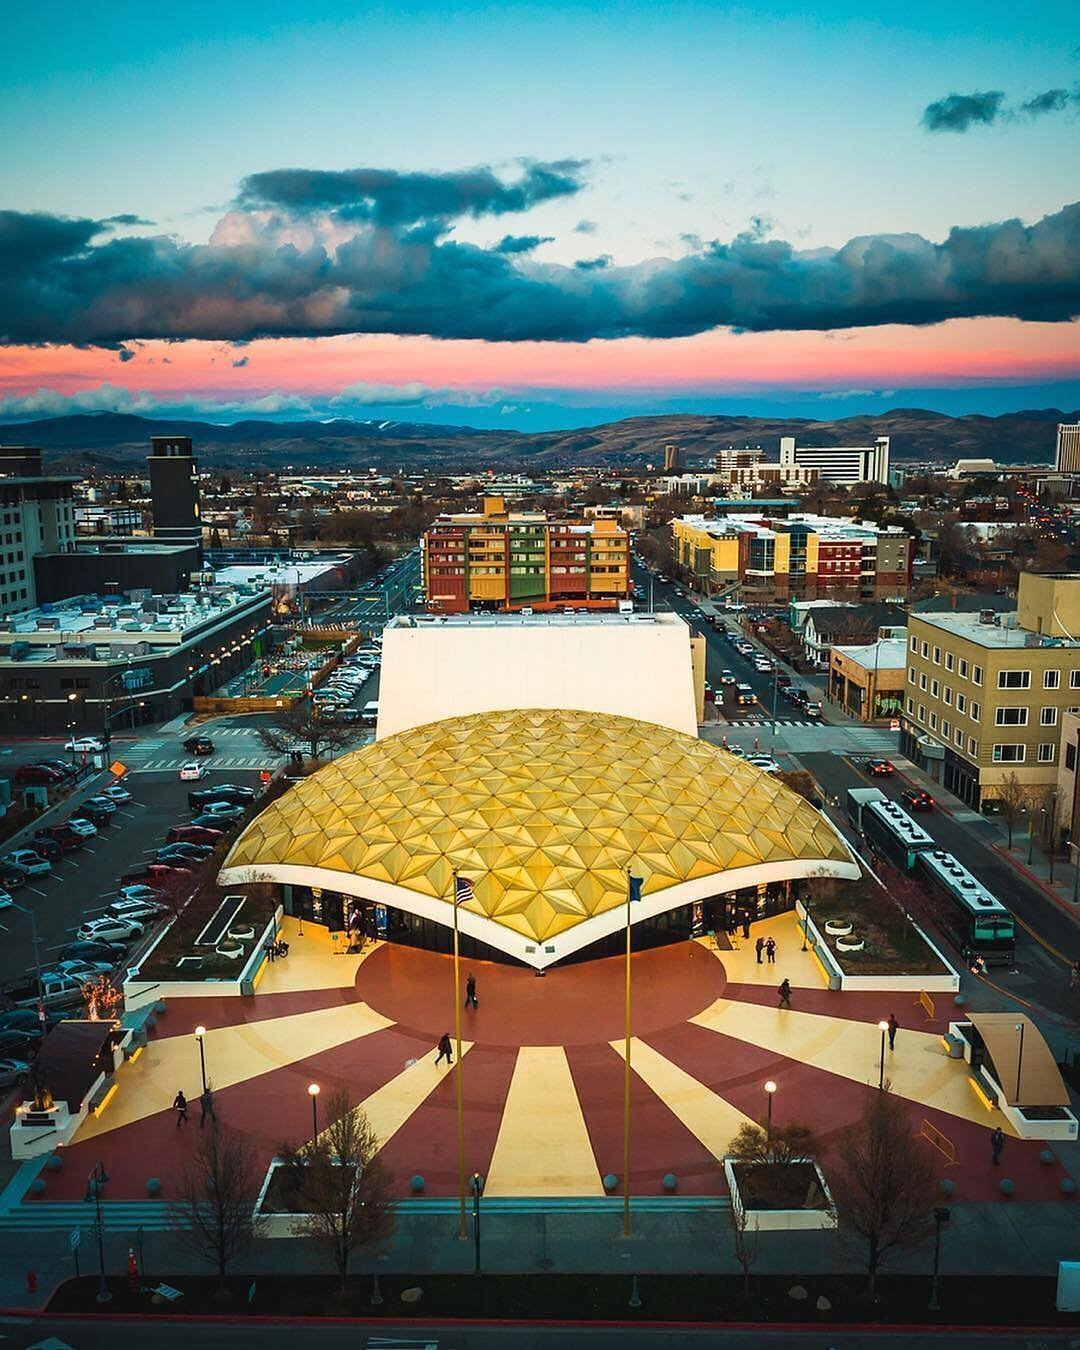 We sure do love to perform at the amazing pioneercenter. We can't believe the season is coming to a close! What was your favorite concert throughout our 50th season? ⠀ ⠀ Photo: streets.win